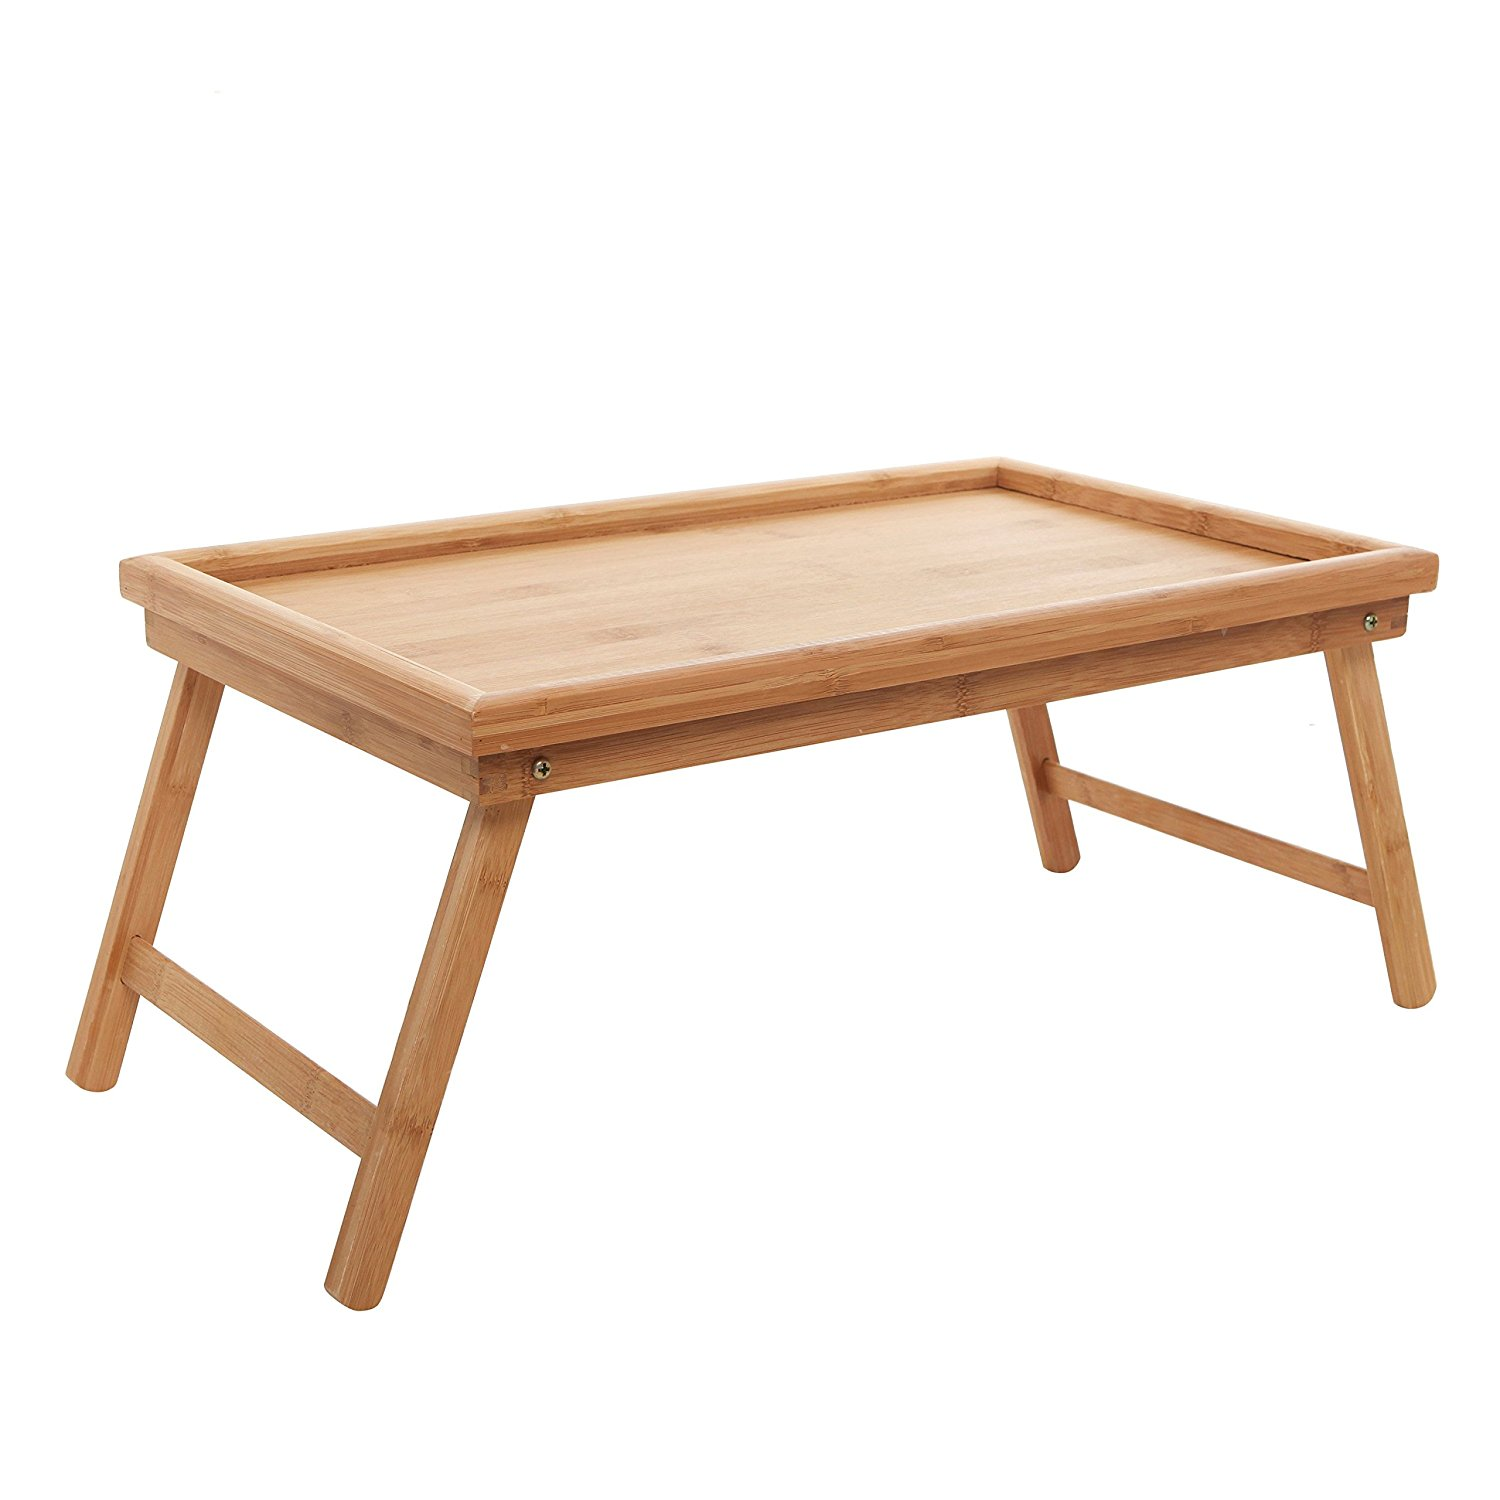 New Wooden Folding Bamboo Food Breakfast Dinner Lunch Lap Serving Tray Table